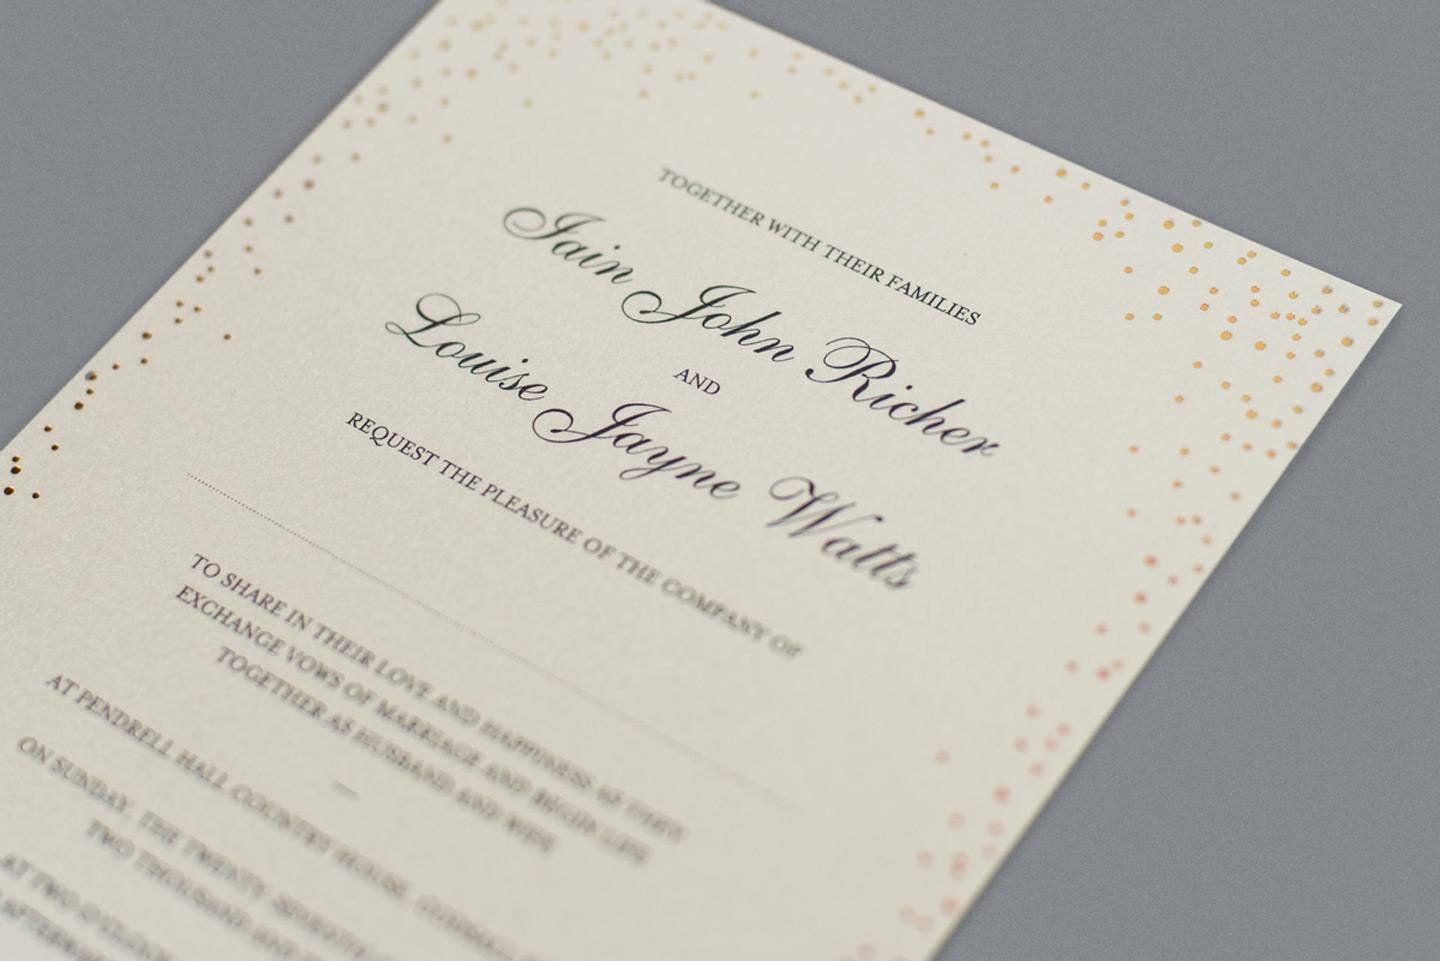 Wording For Invitations Wedding: Wedding Invitation Wording: How To Get It Right